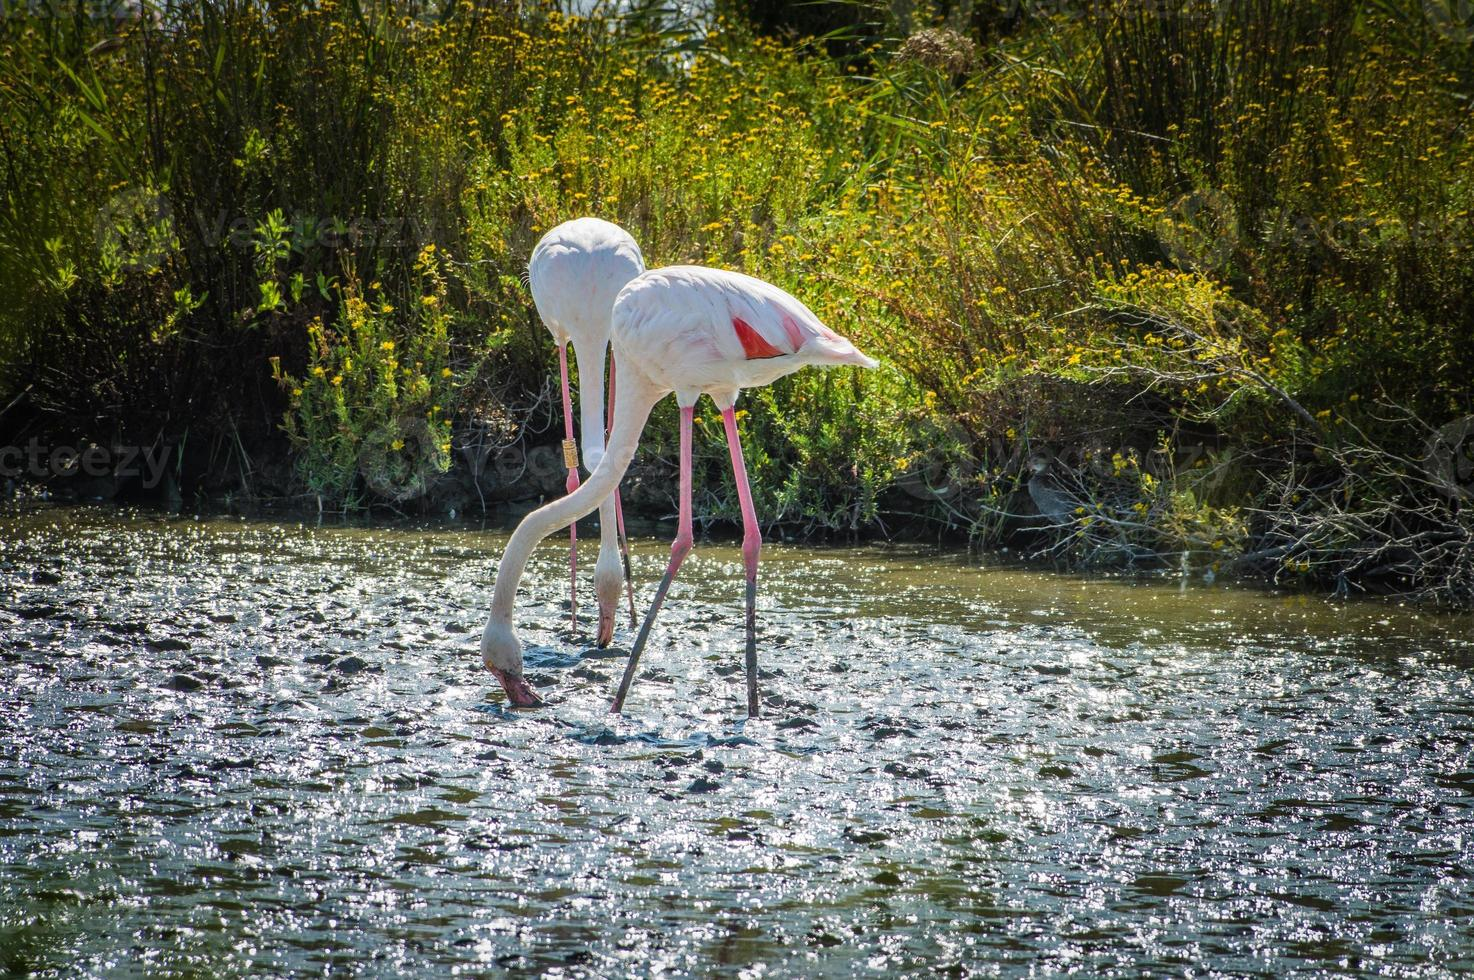 Pink Flamingo (Phoenicopterus ruber) in Camargue, France photo